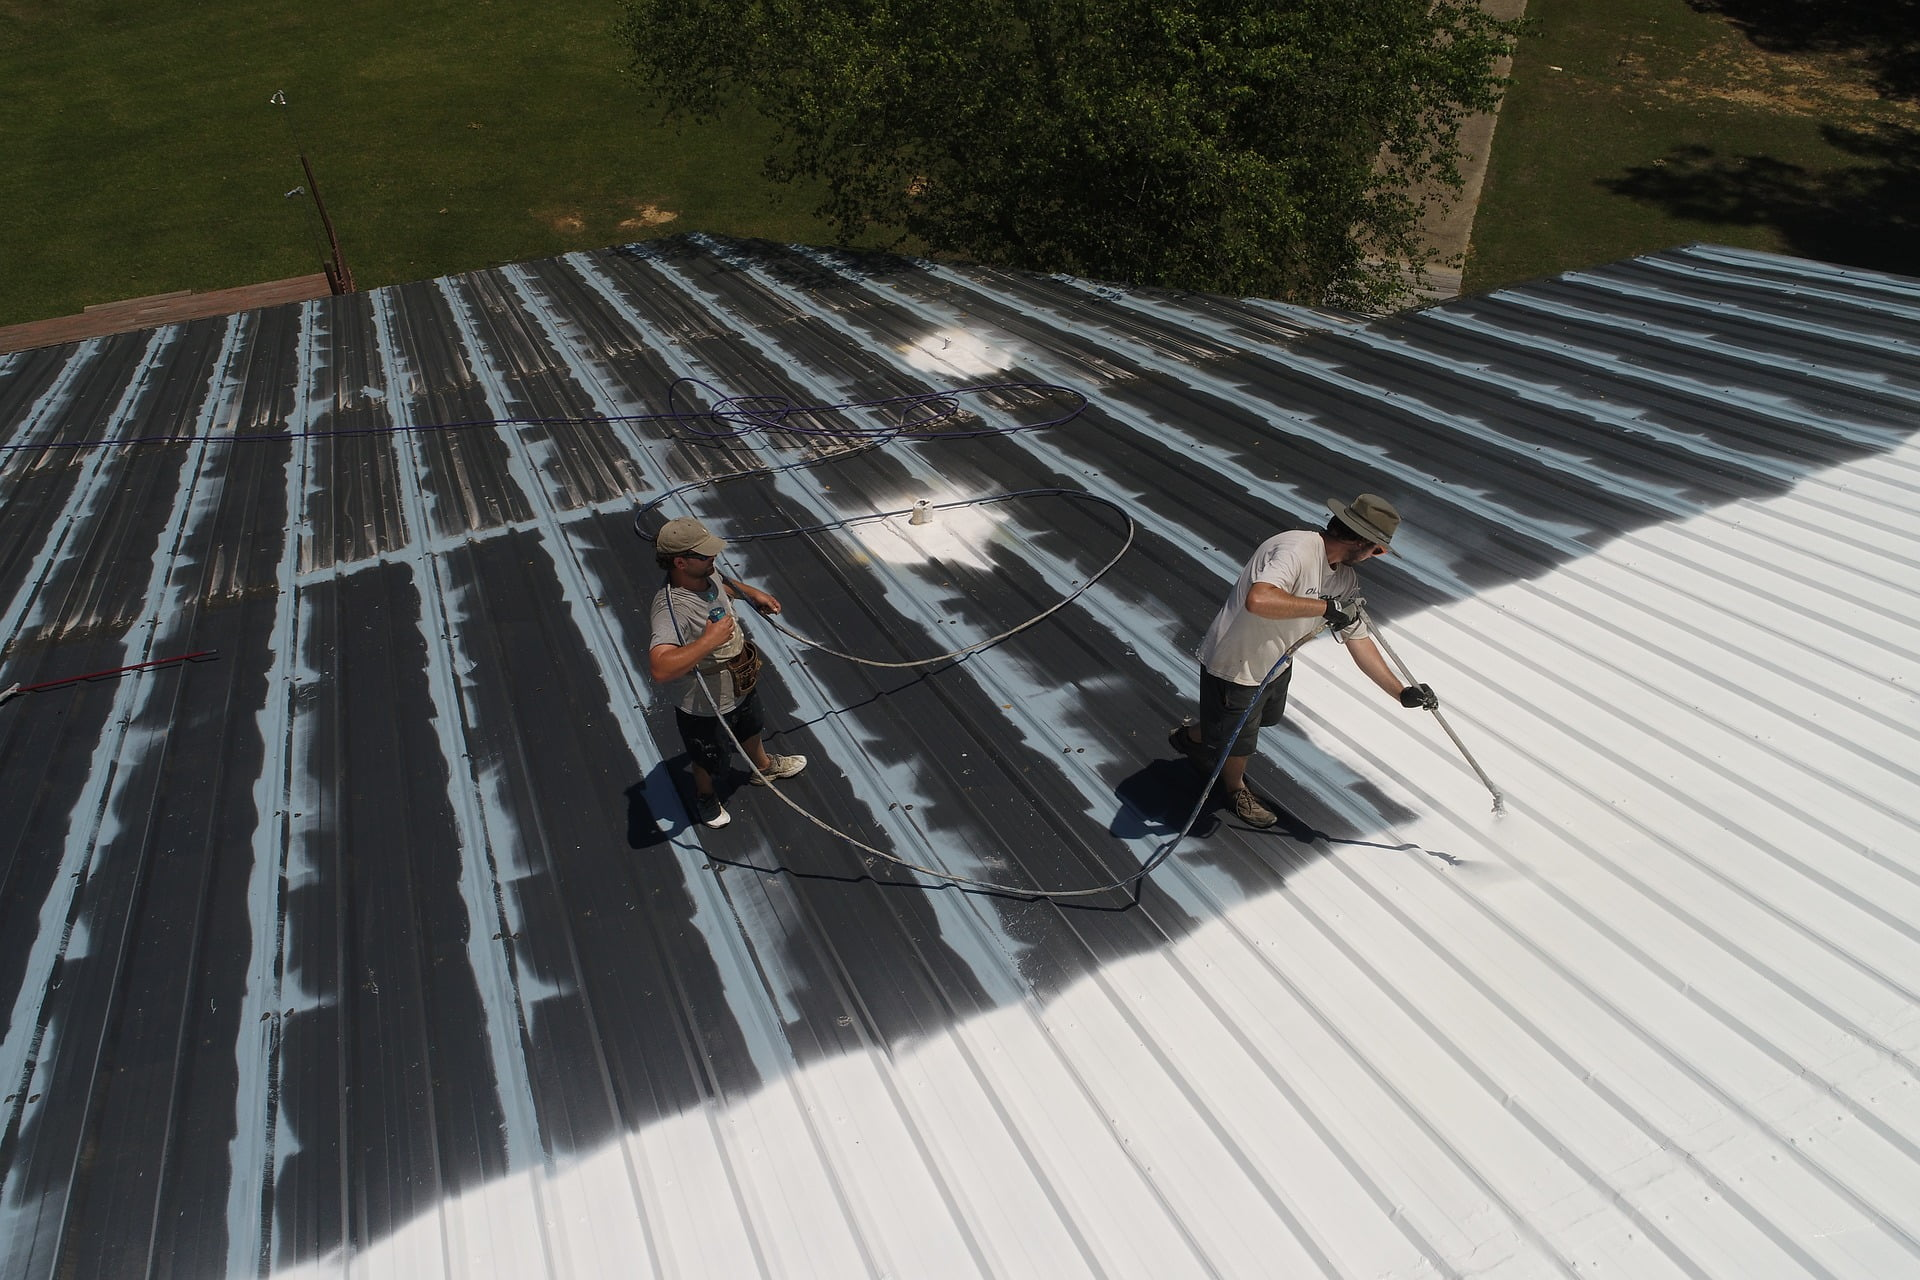 Commercial Roofing Leaks Repair in Houston